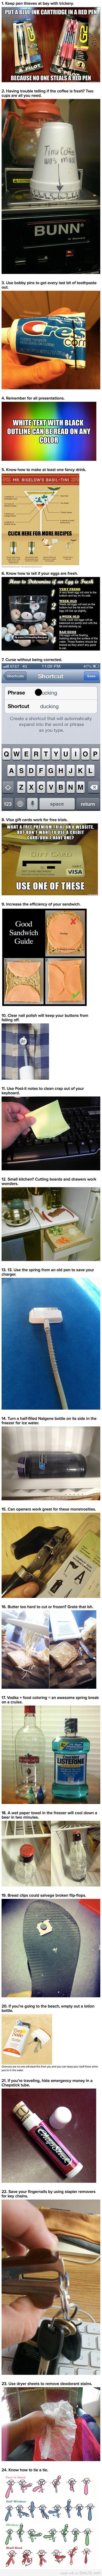 """Actually useful """"Life Hacks"""" - totally going to use the listeriosis trick"""